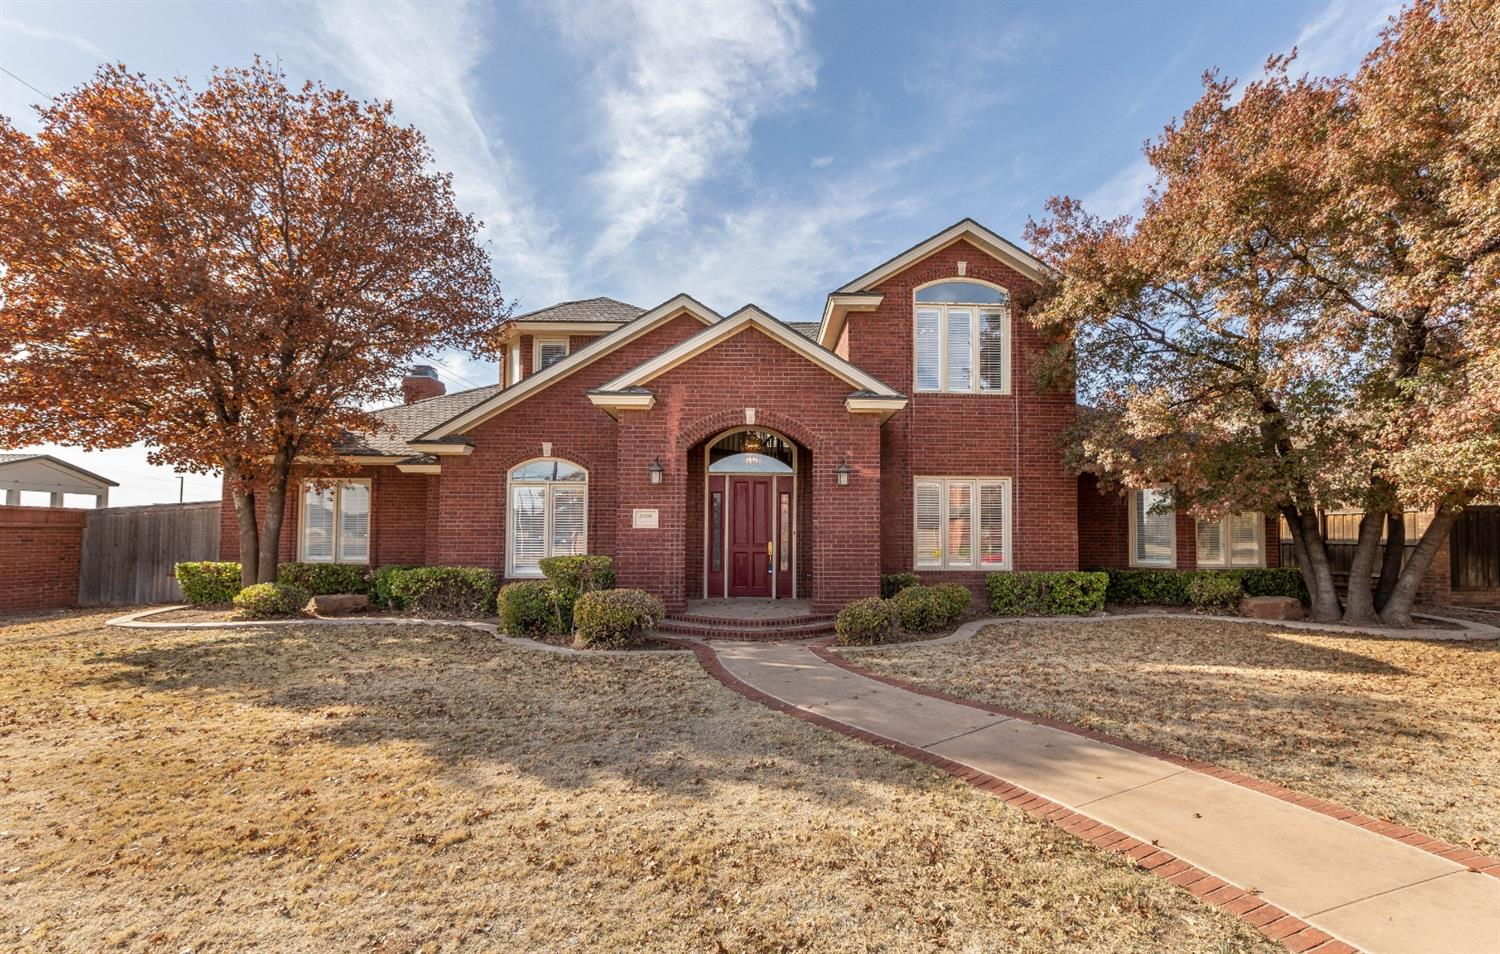 You would like to have lots of natural light & tall ceilings but new construction prices are blowing your mind? You need 4+ bedrooms and several living areas but can't fathom paying Cooper/Frenship taxes?  SW Lubbock is a must but want the feel of an established neighborhood?  Here's your ideal opportunity in this stately 2-story in LakeRidge - priced to sell at only $100/sqft!! Multiple living spaces inc kids area/loft (17 x 15.5) on 2nd floor, wood-floored gameroom/MIL suite on first floor. 4 full baths + a 1/2 bath for guests. Each bedroom is huge and has its own bathroom- one upstairs with 10 x 9.5 area. Nice built-ins throughout. Two lovely fireplaces. The backyard begs for a pool and there's plenty of space for it. 3 car garage! Opportunity knocks!